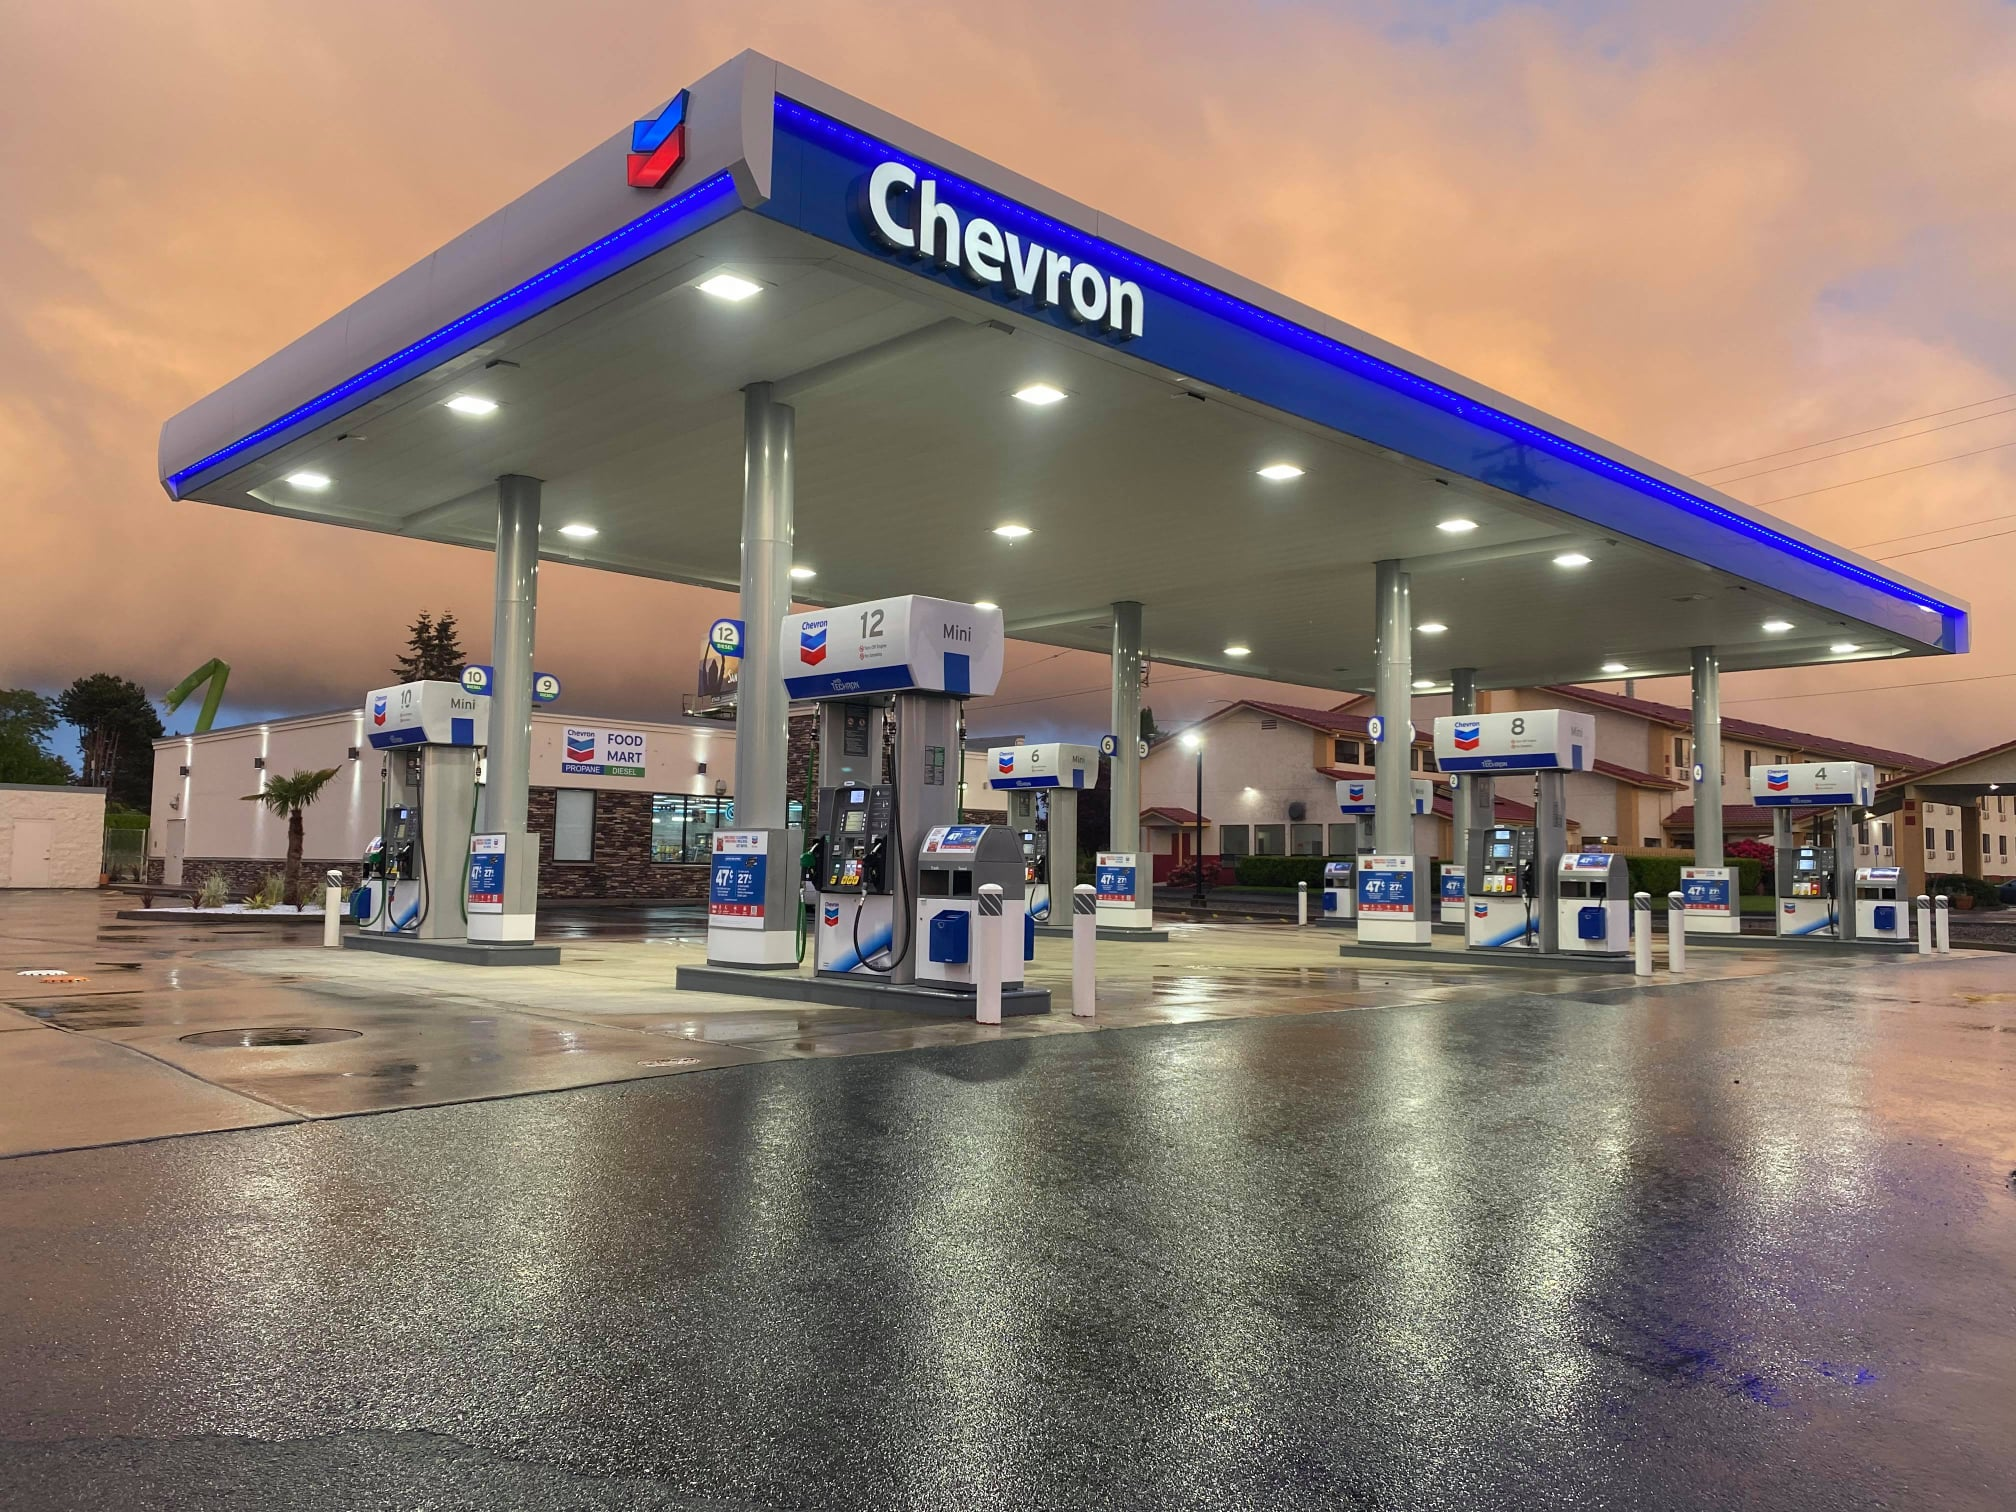 Chevron Salem Goes Nearly Touchless at The Pump in During Covid-19 Pandemic